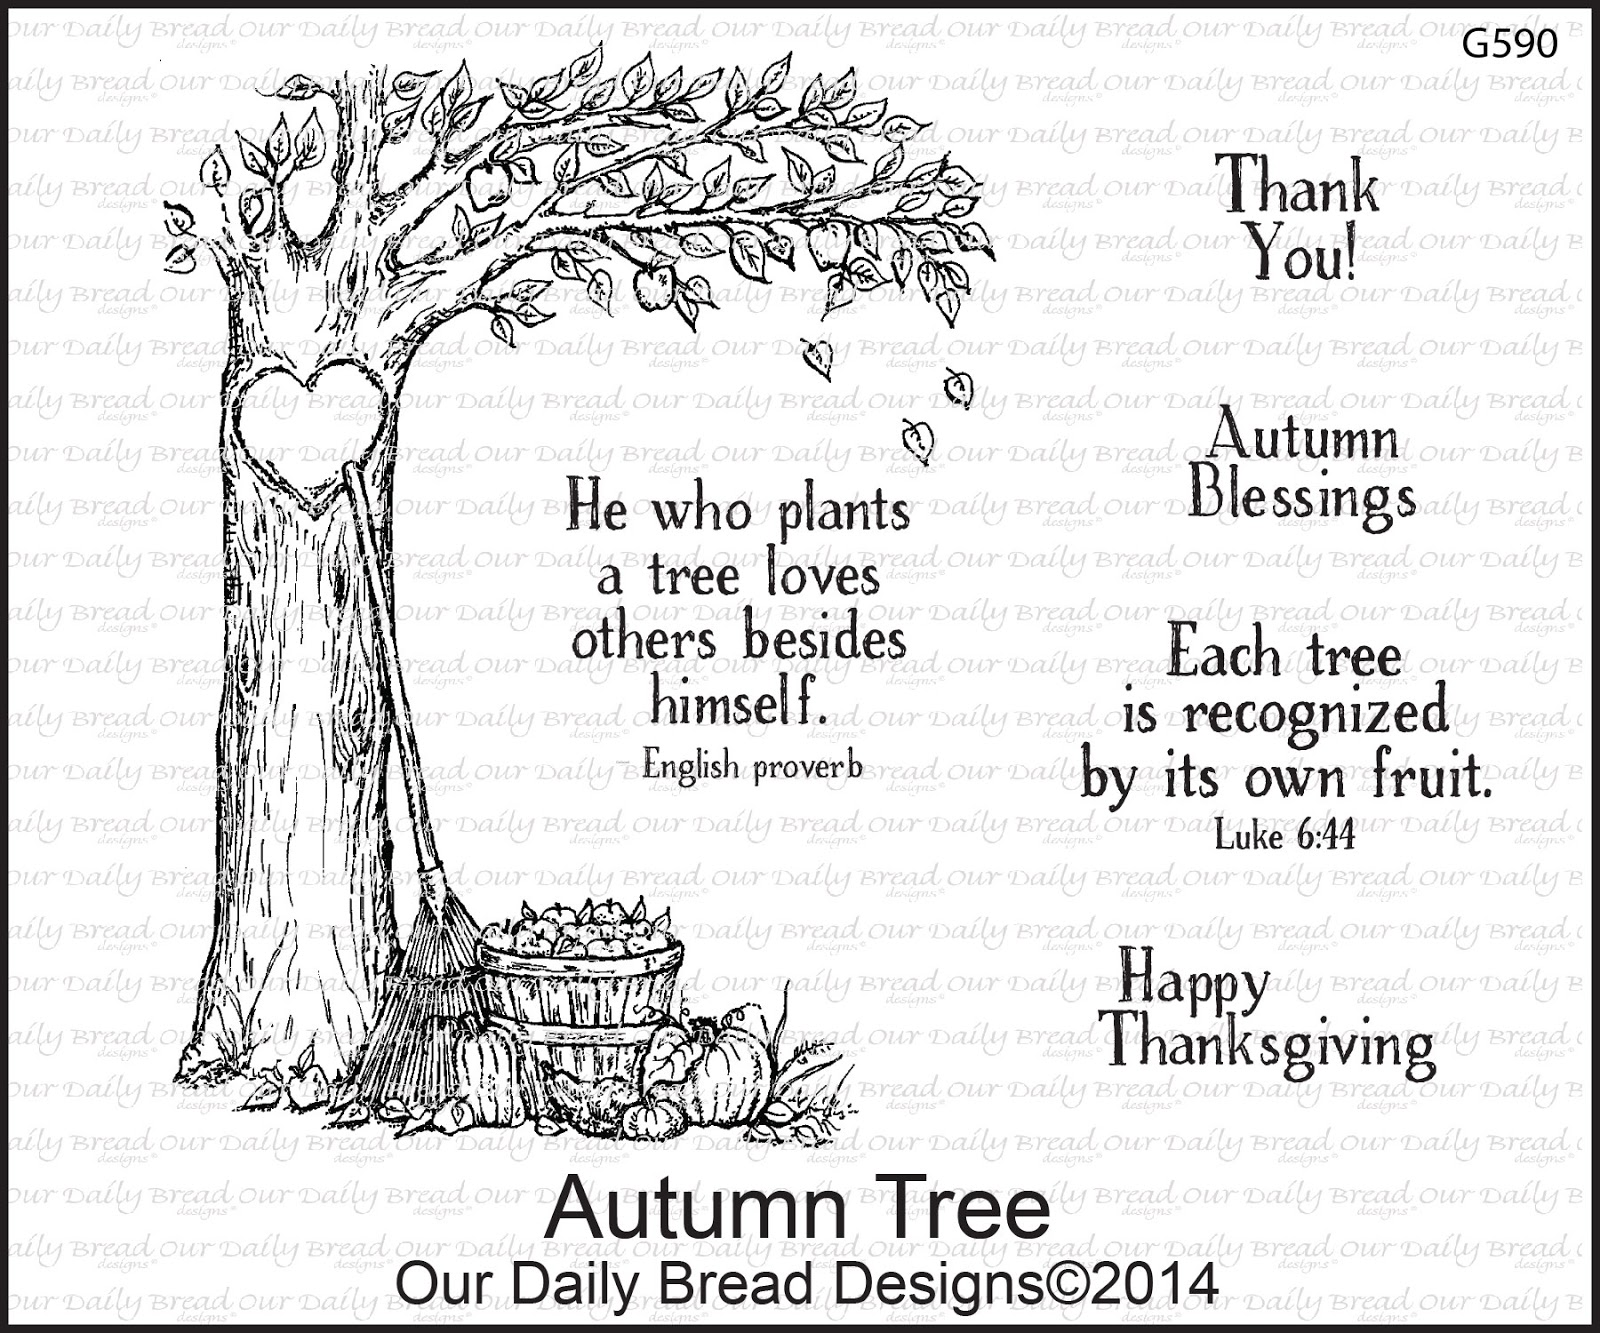 Stamps - Our Daily Bread Designs Autumn Blessings